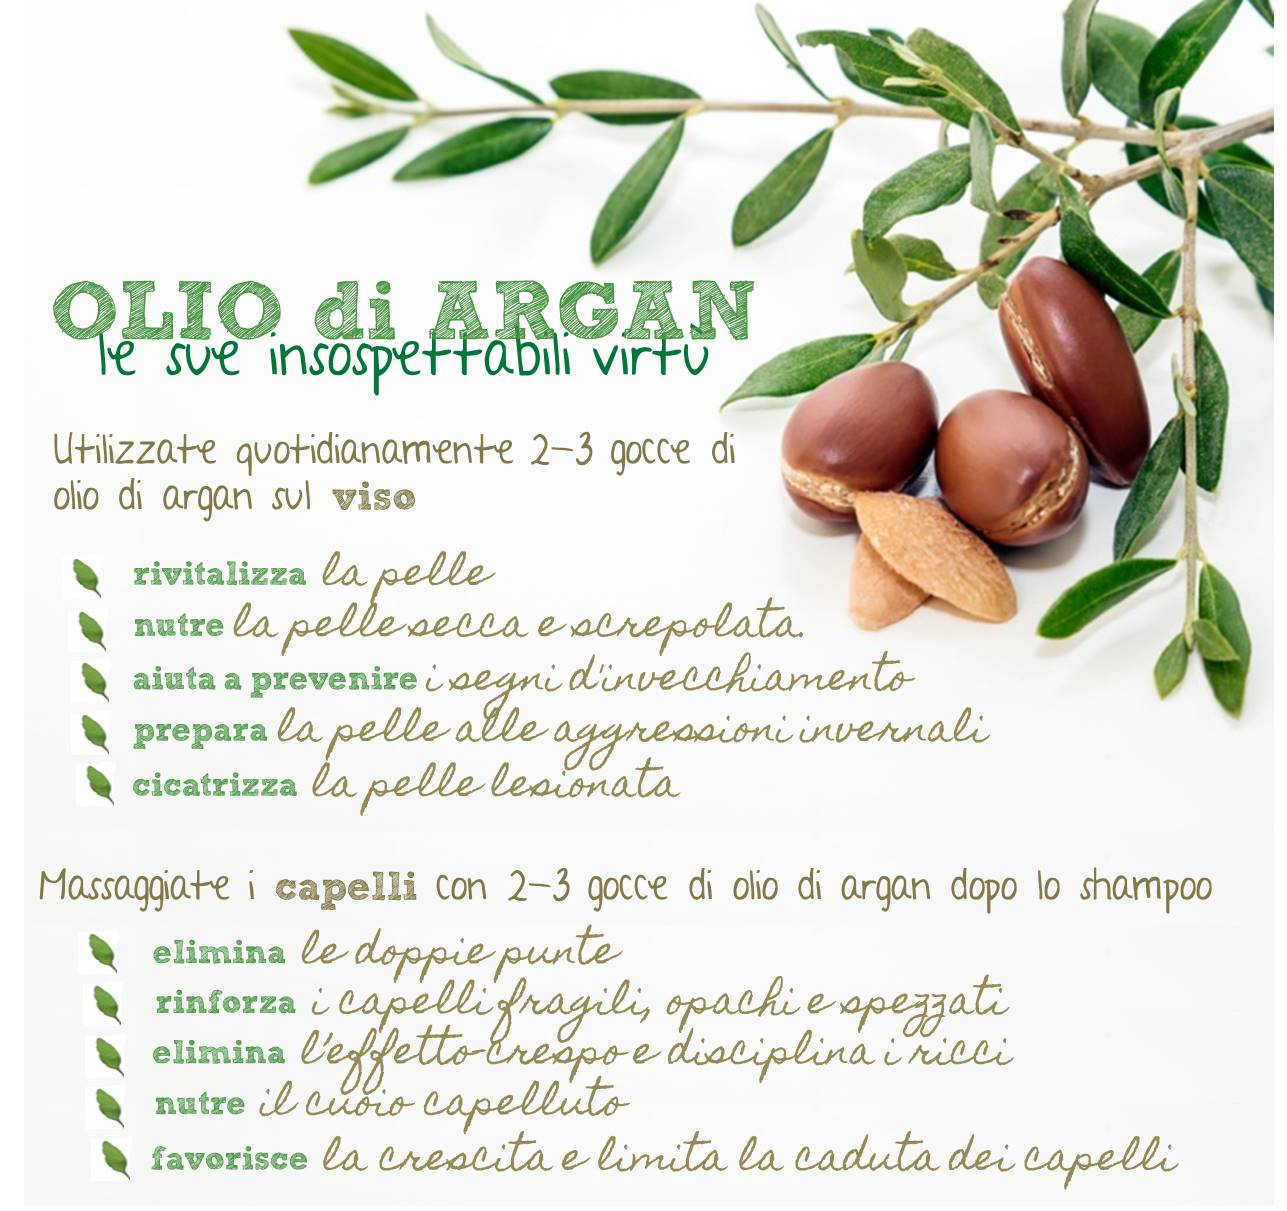 Photo of Olio di argan: proprietà e benefici per capelli e in cosmetica